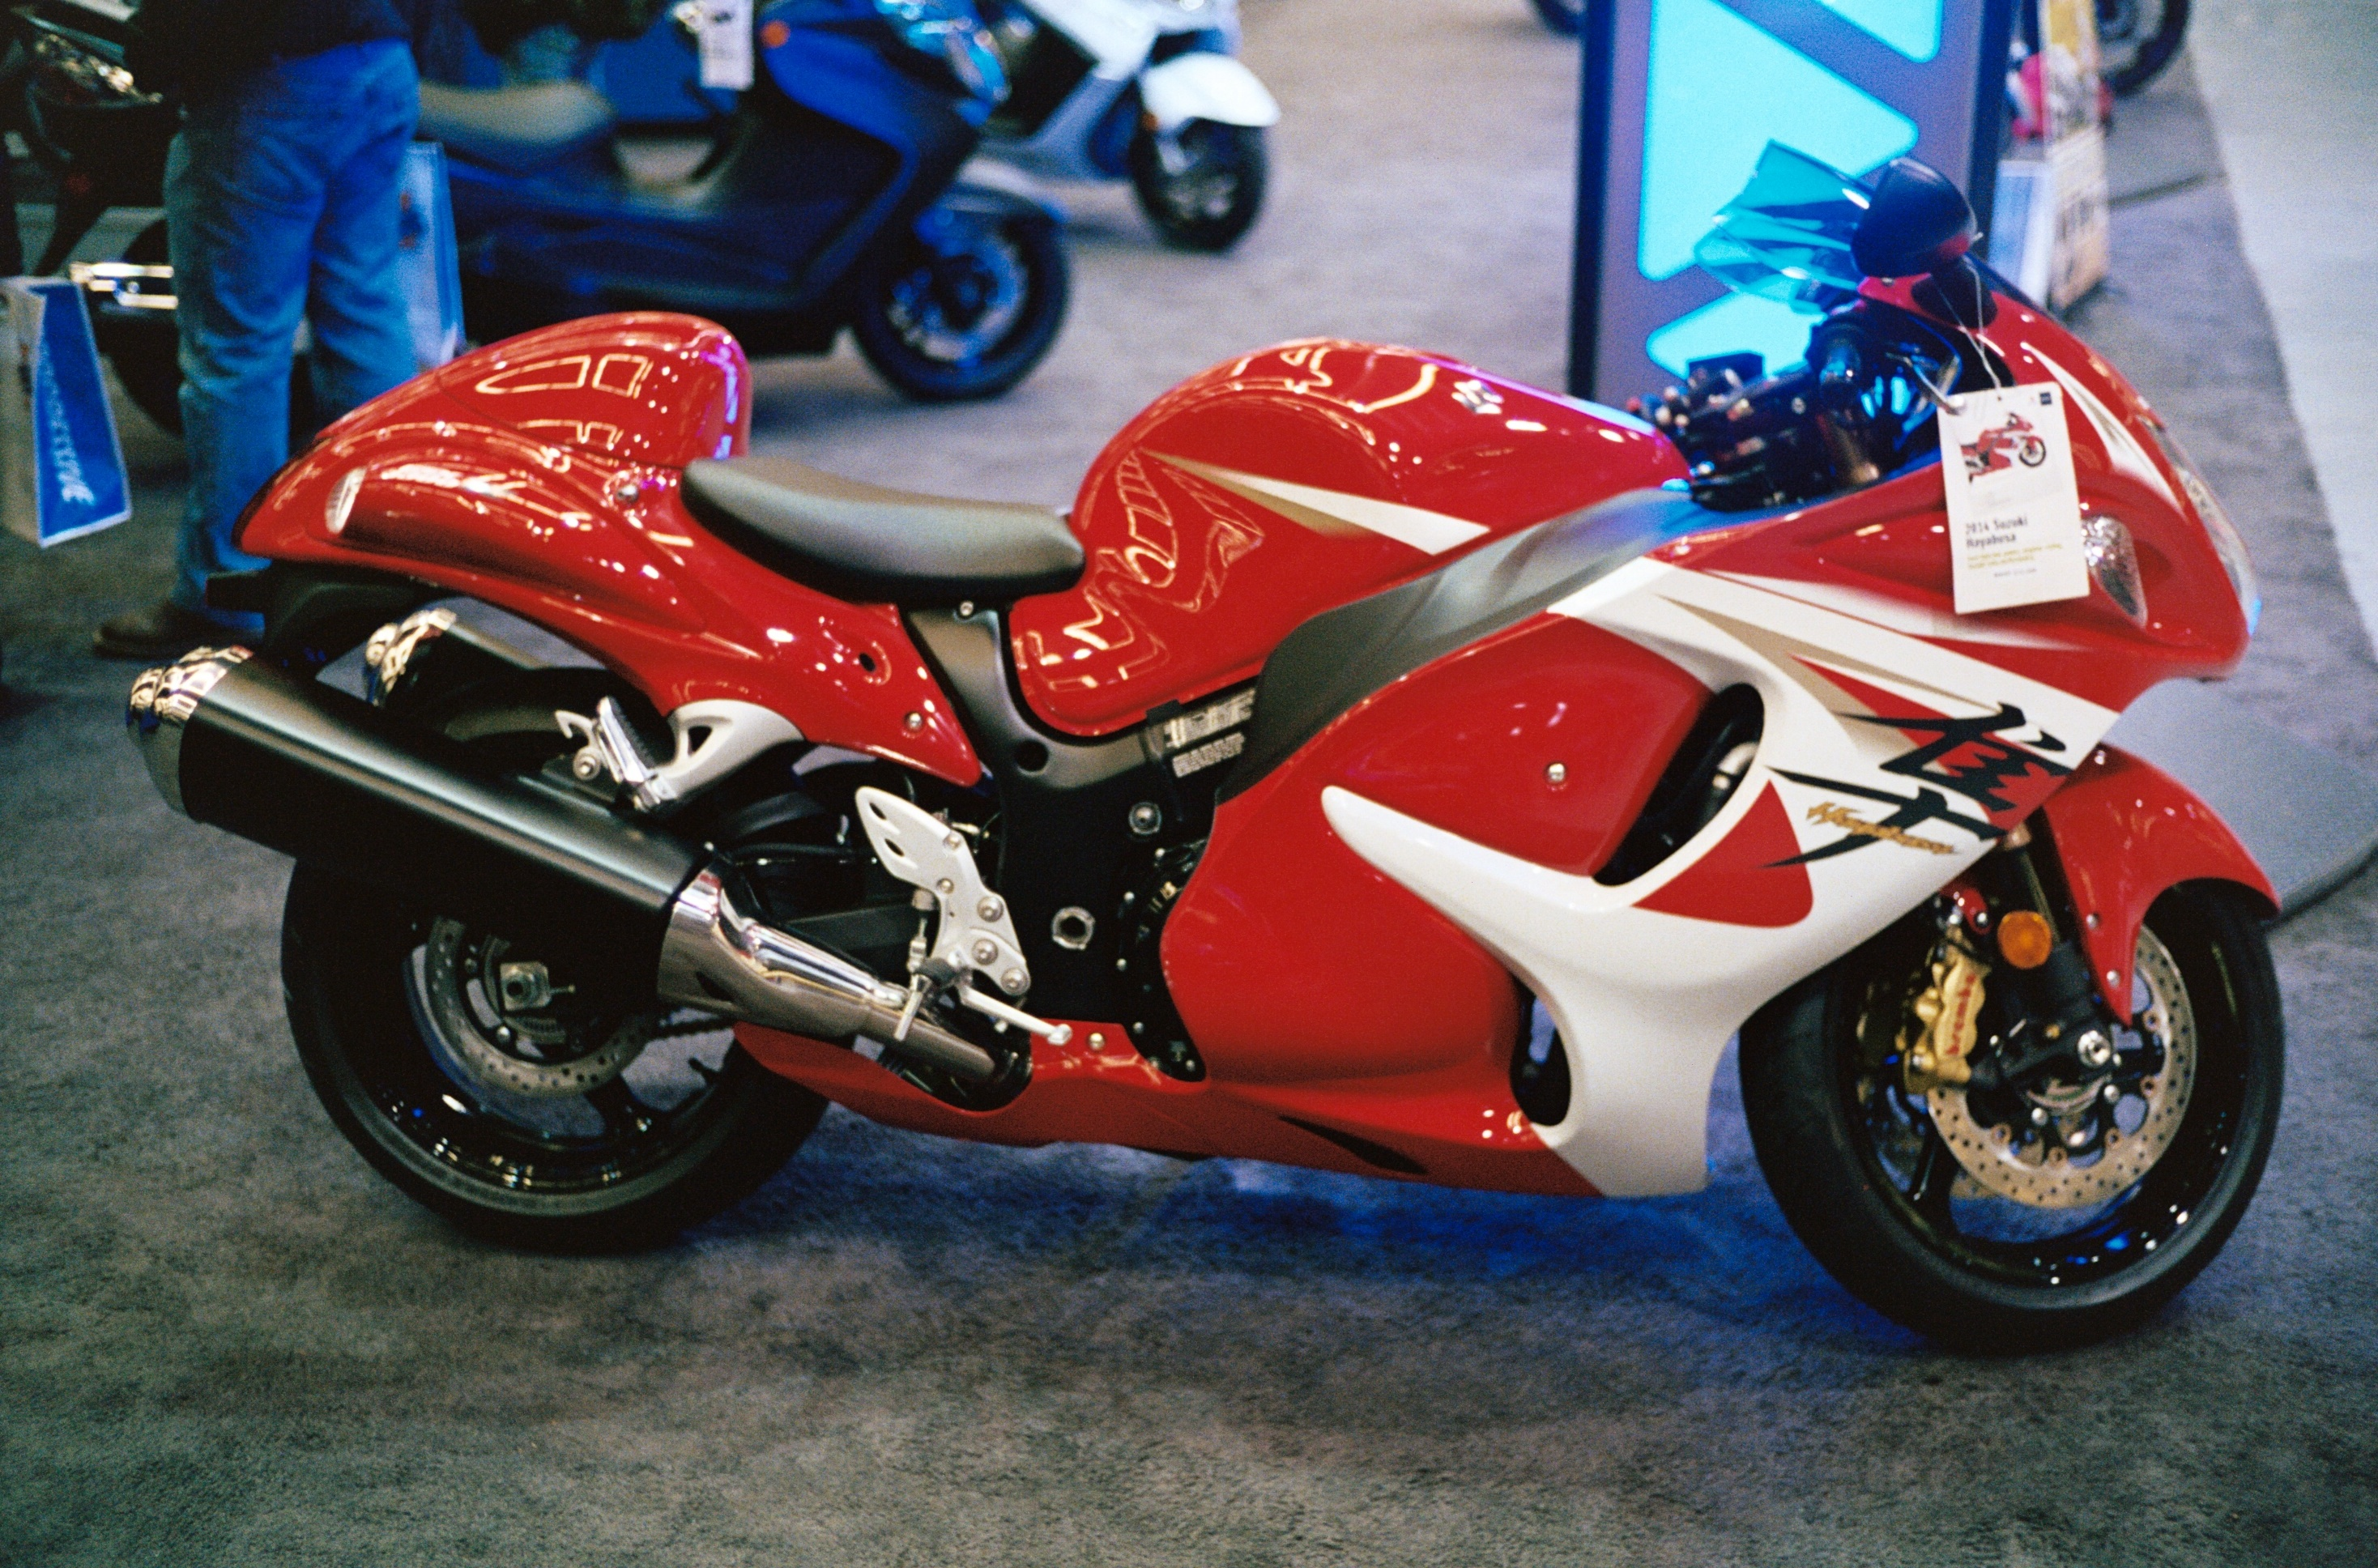 File:2014 Suzuki Hayabusa red right.JPG - Wikimedia Commons